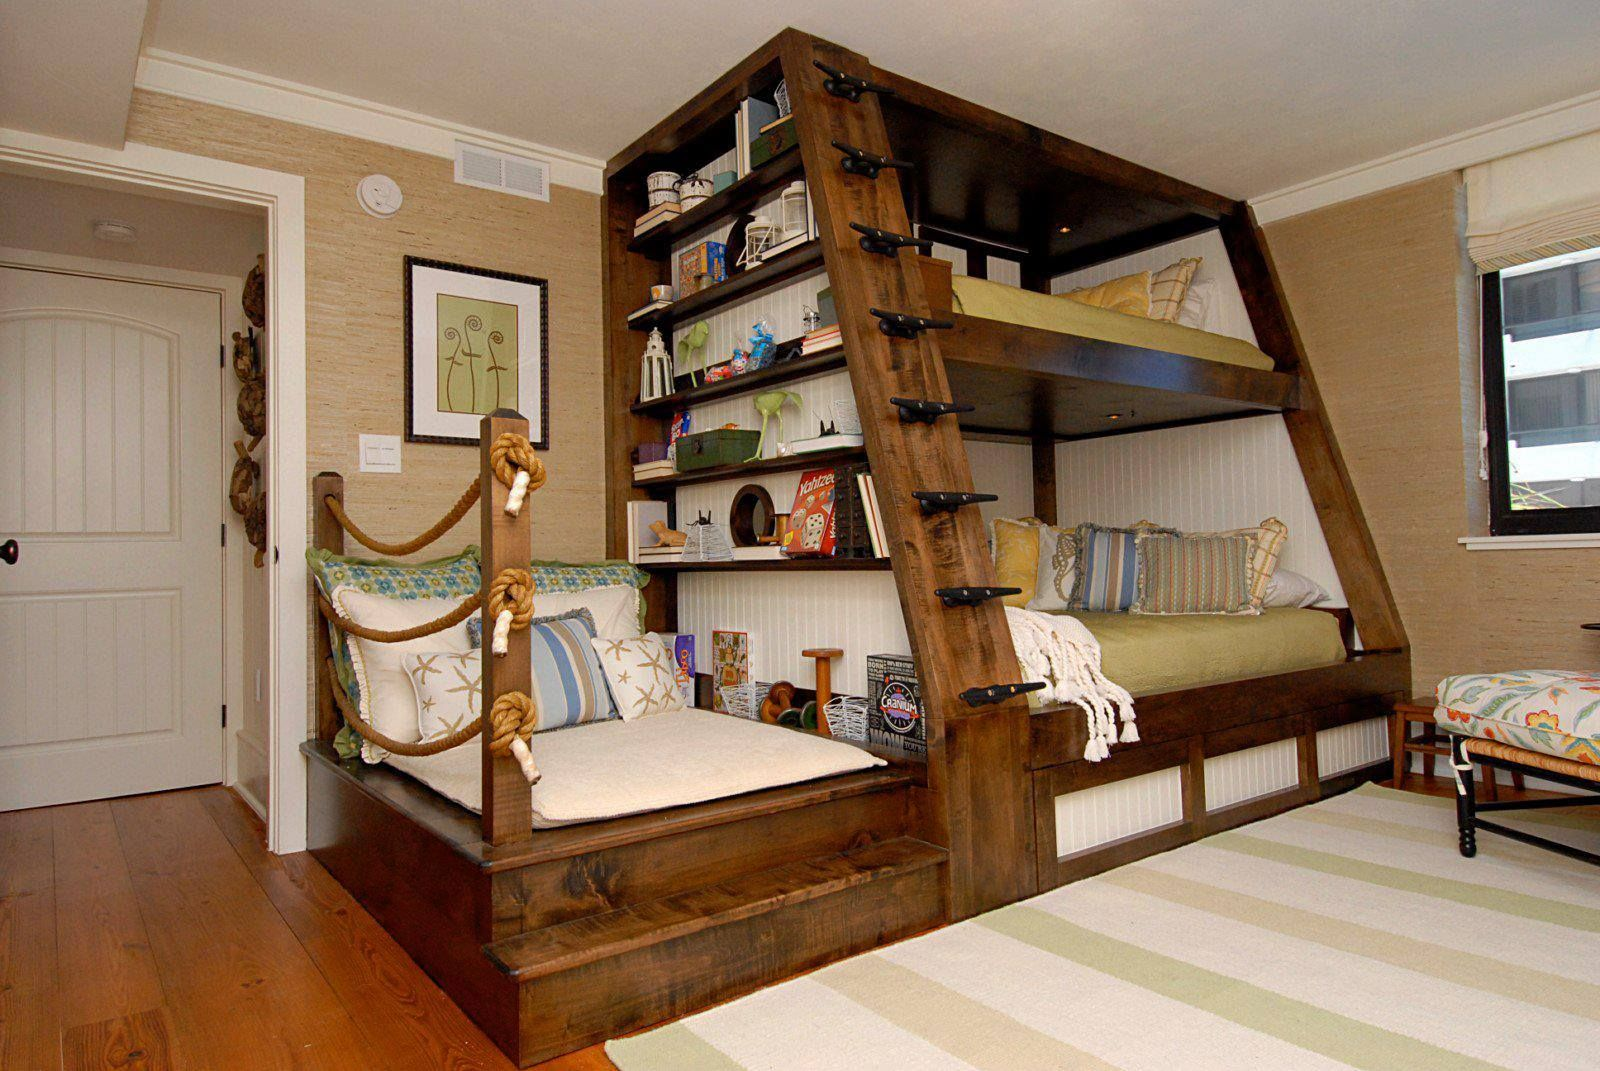 Cool loft bed ideas  the ultimate bunk bed  Home Decor  Pinterest  Dreams beds Beds